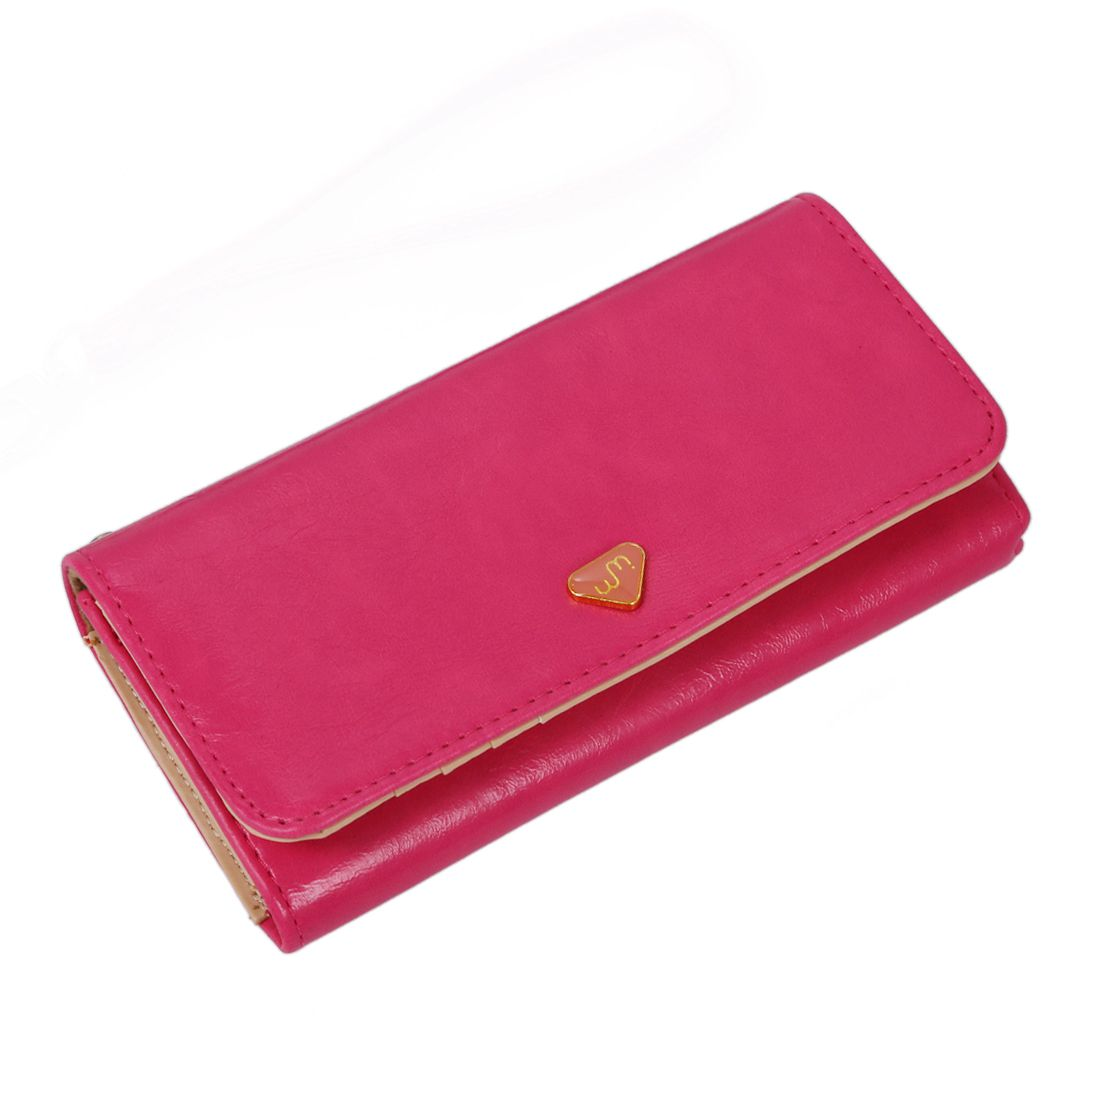 ASDS New Fashion Leather Women Wallet Travel Credit Card Package ID Storage Bag-rose red irfp350lc to 247